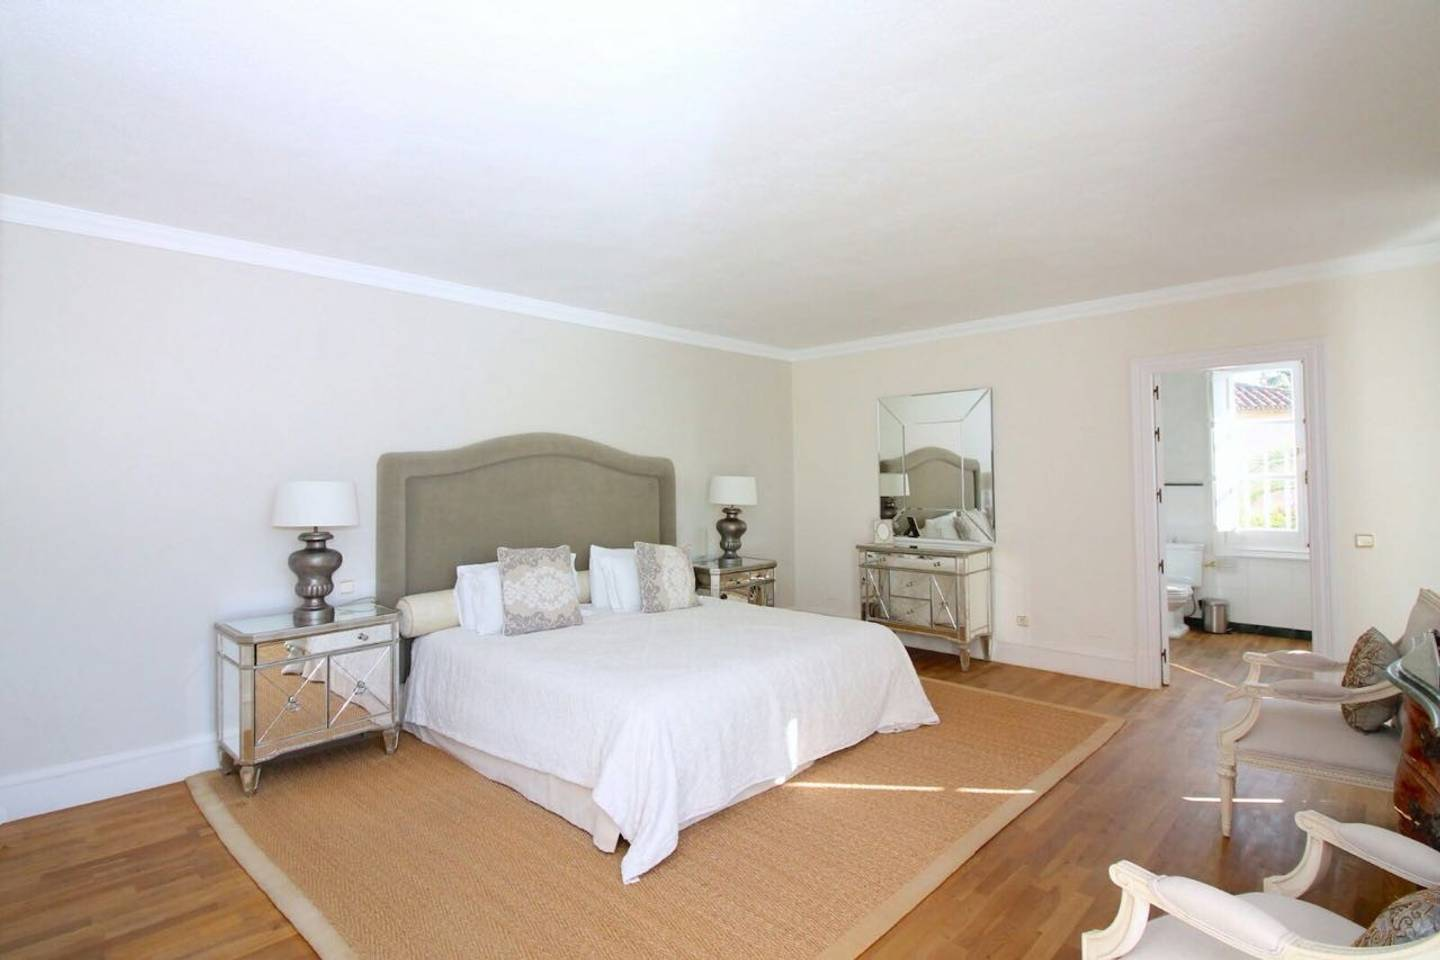 Apartment Soo LUXURIOUS catered Spoiling Estate Pools   Spa photo 25977443